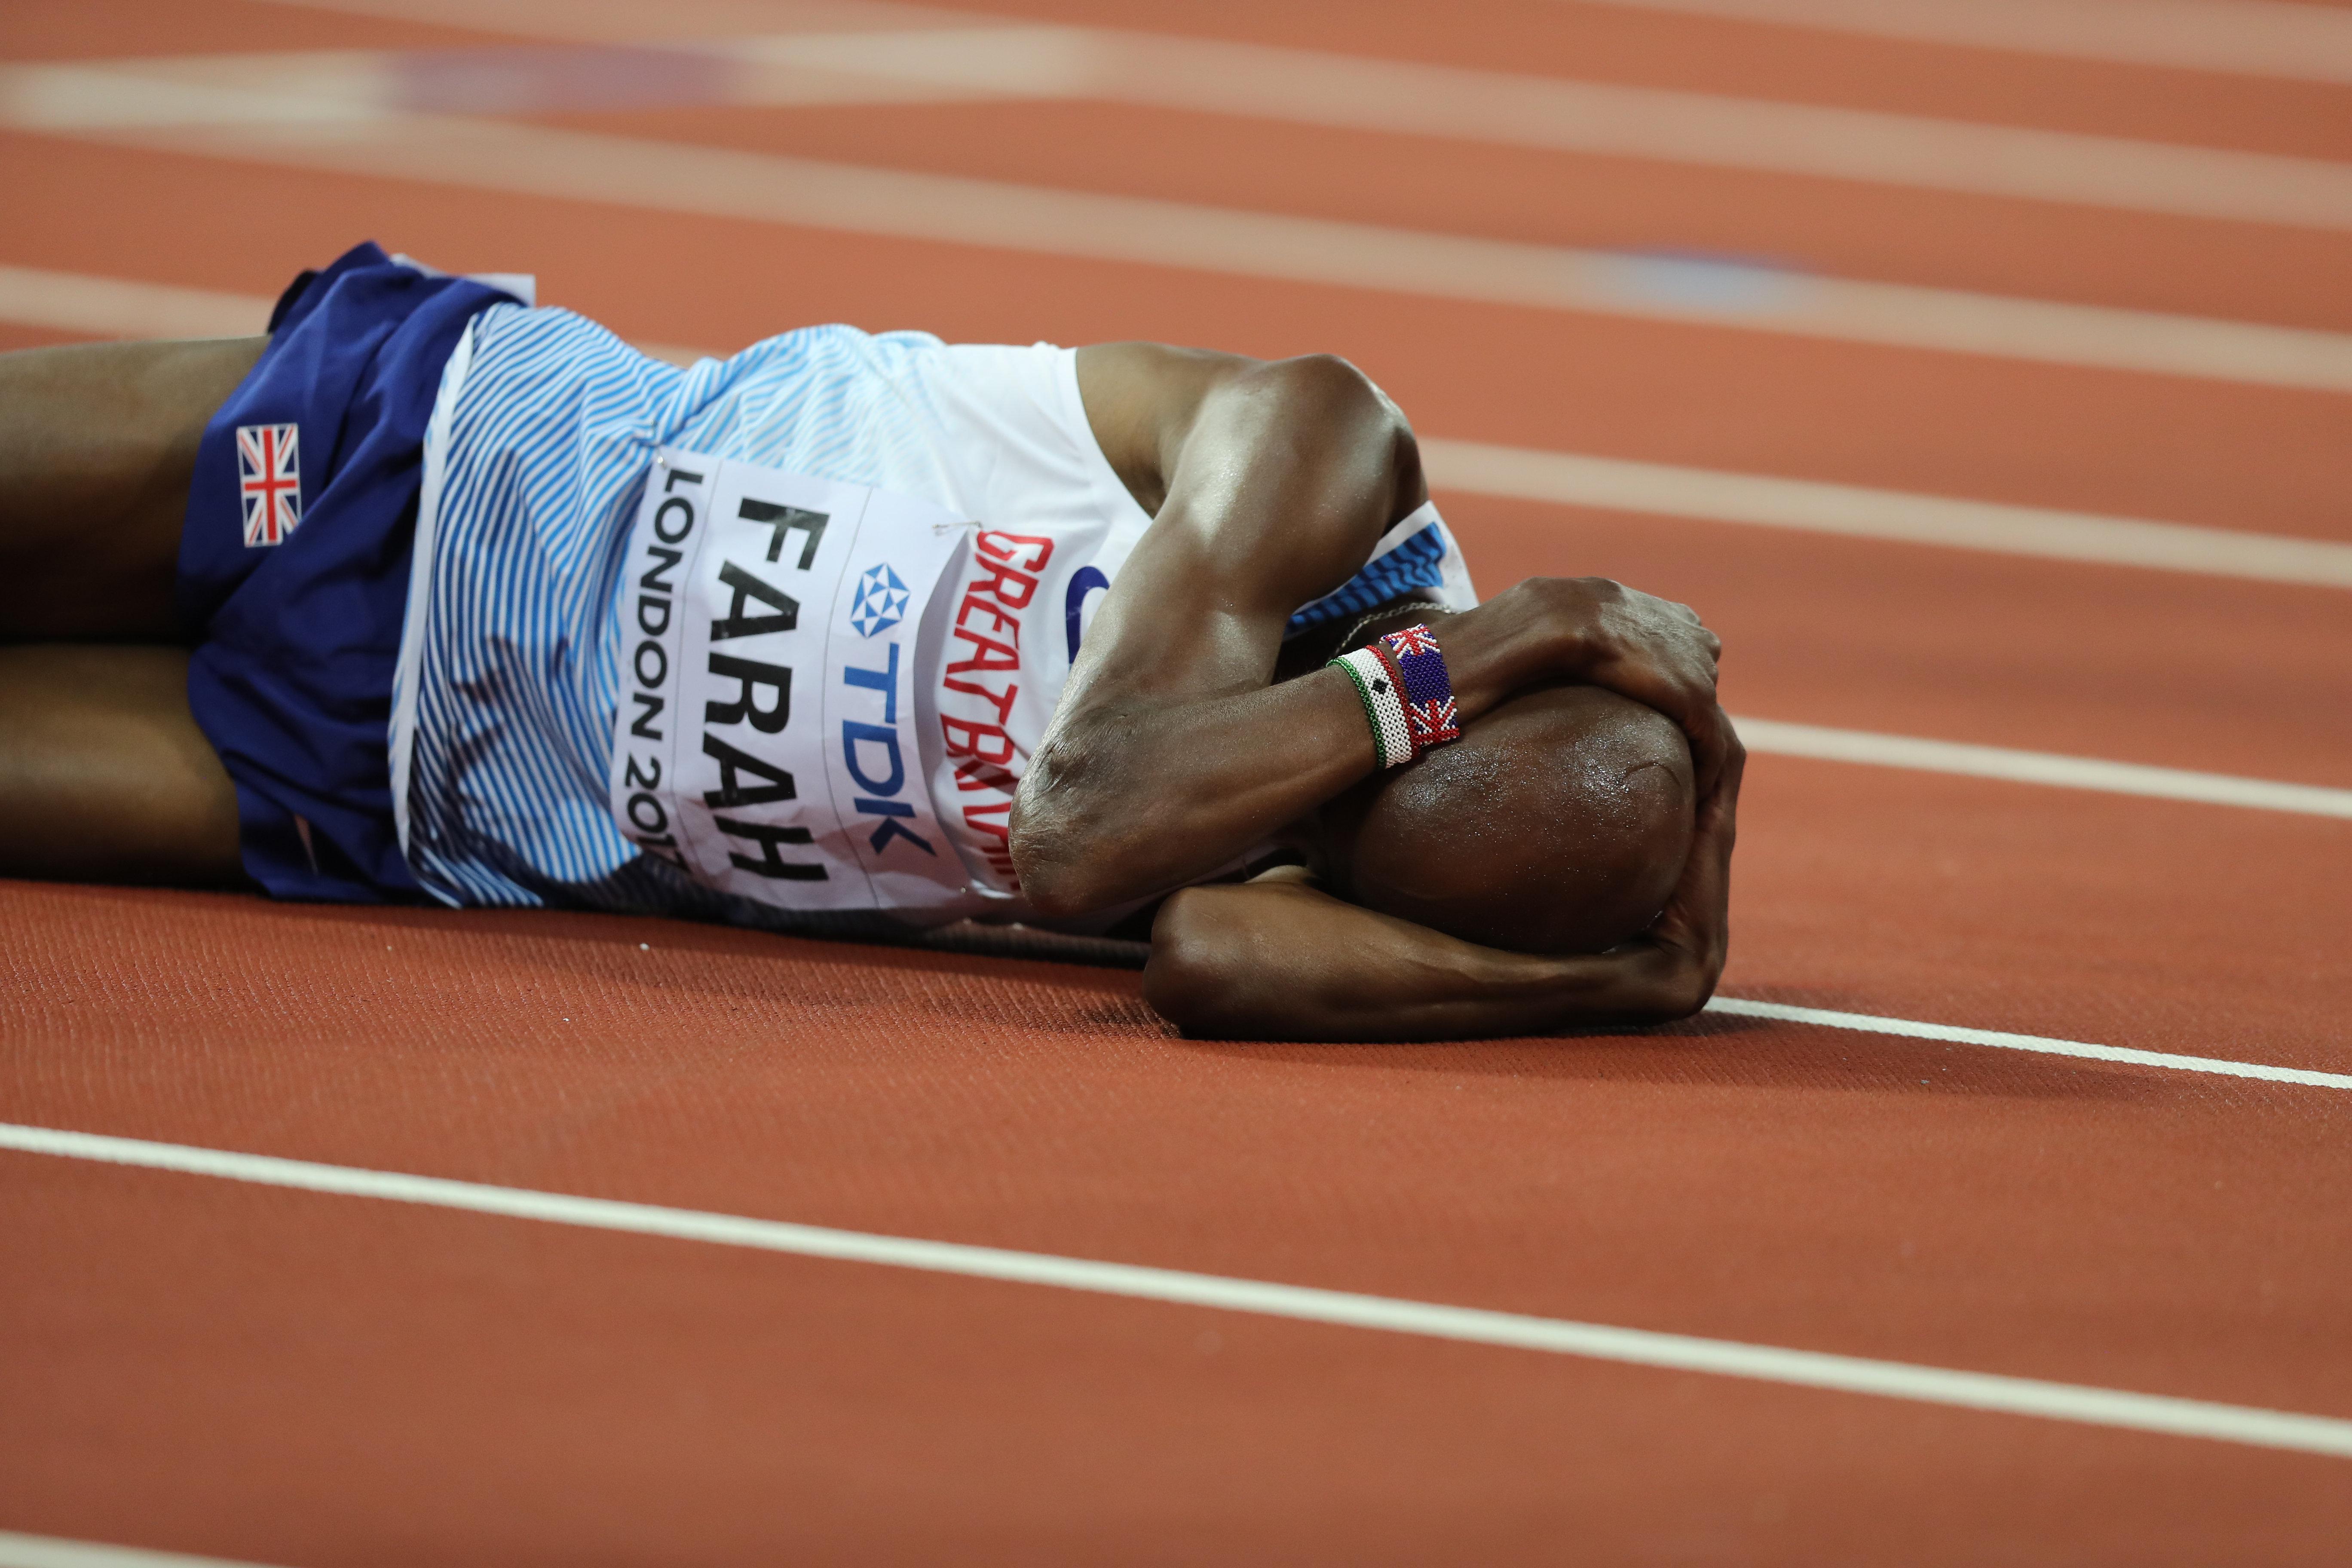 Mo Farah is left distraught as he just comes up short with silver in the 5,000m